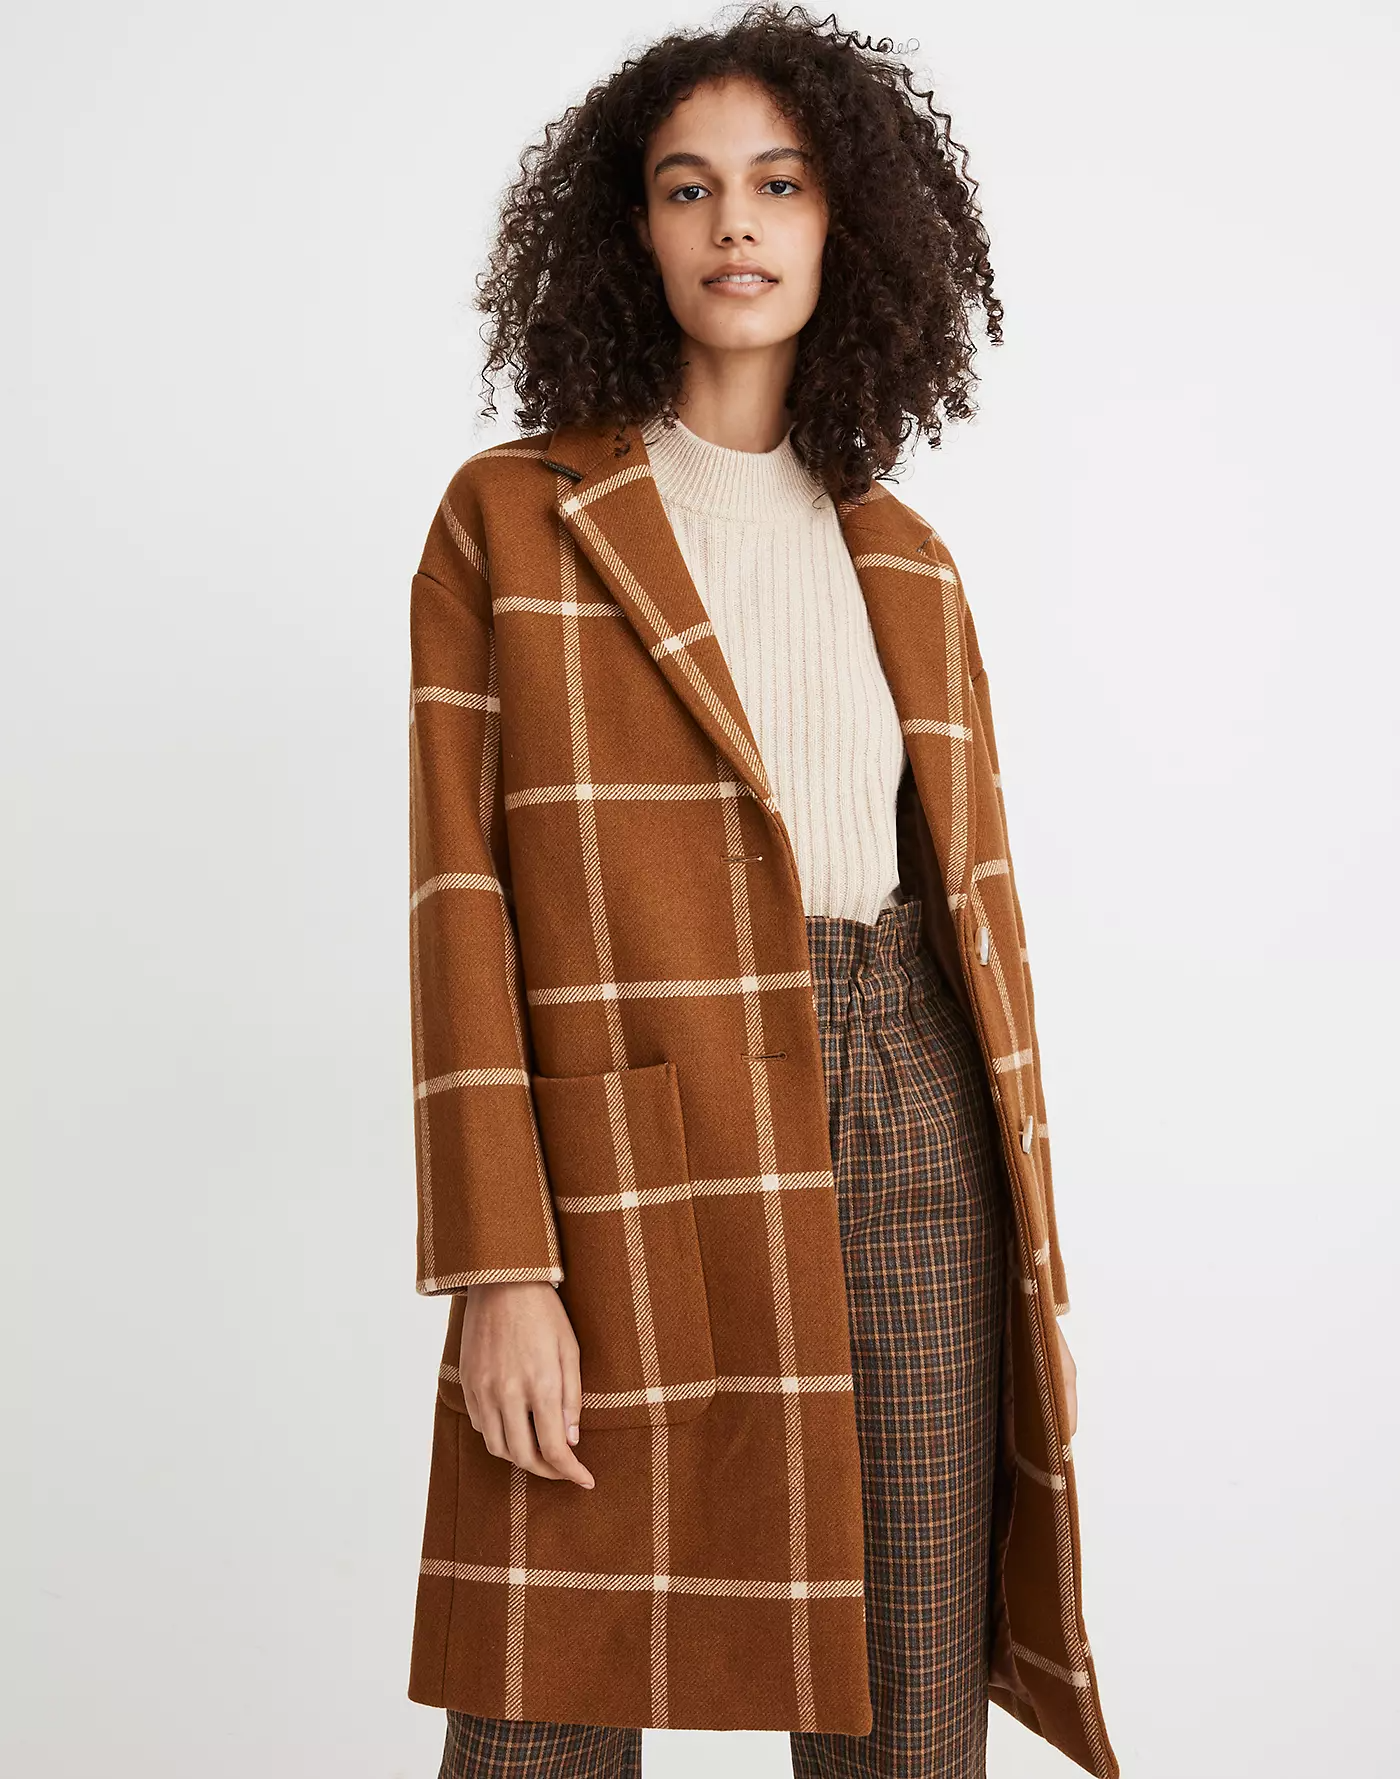 Get Up To 50% Off The Most Stylish Finds From Madewell's Black Friday Sale